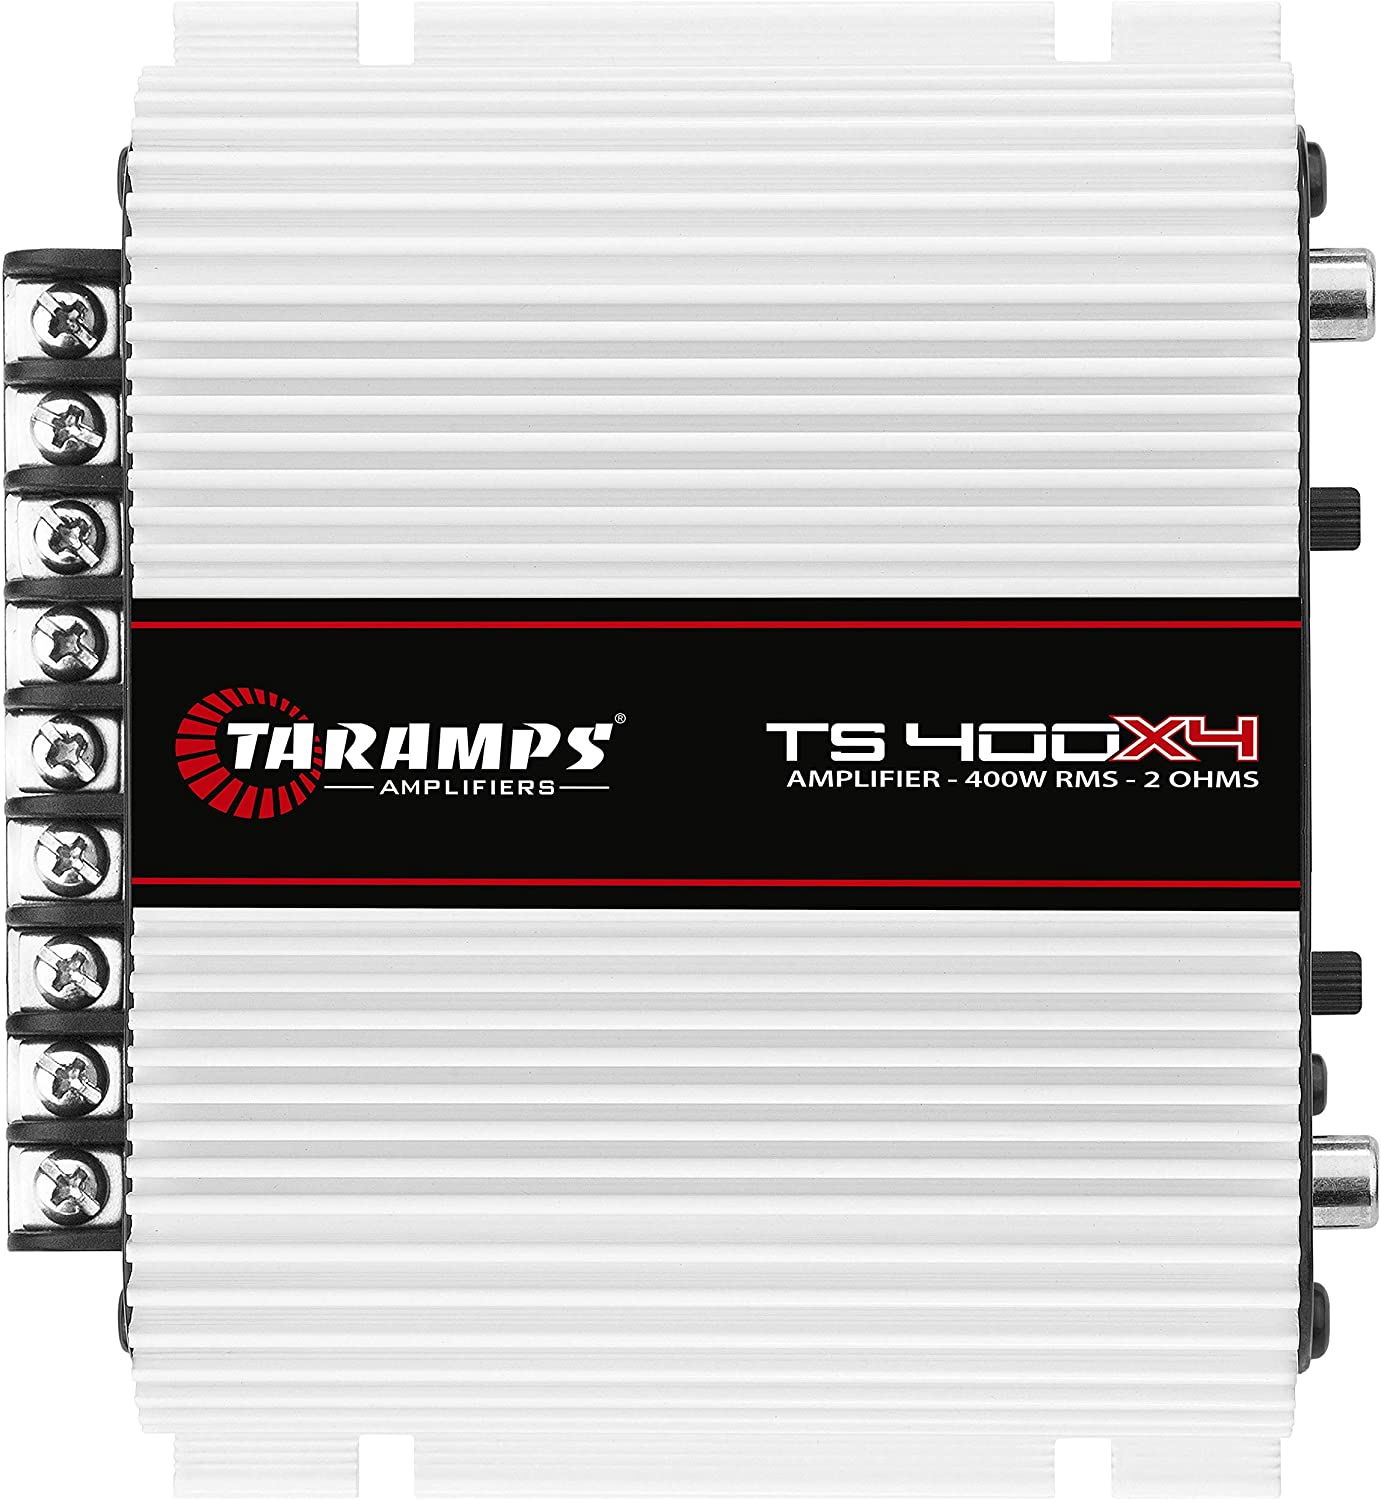 Taramp's TS 400X4 2 Ohms 4 Channel 400 Watts Class D Full Range Amplifier